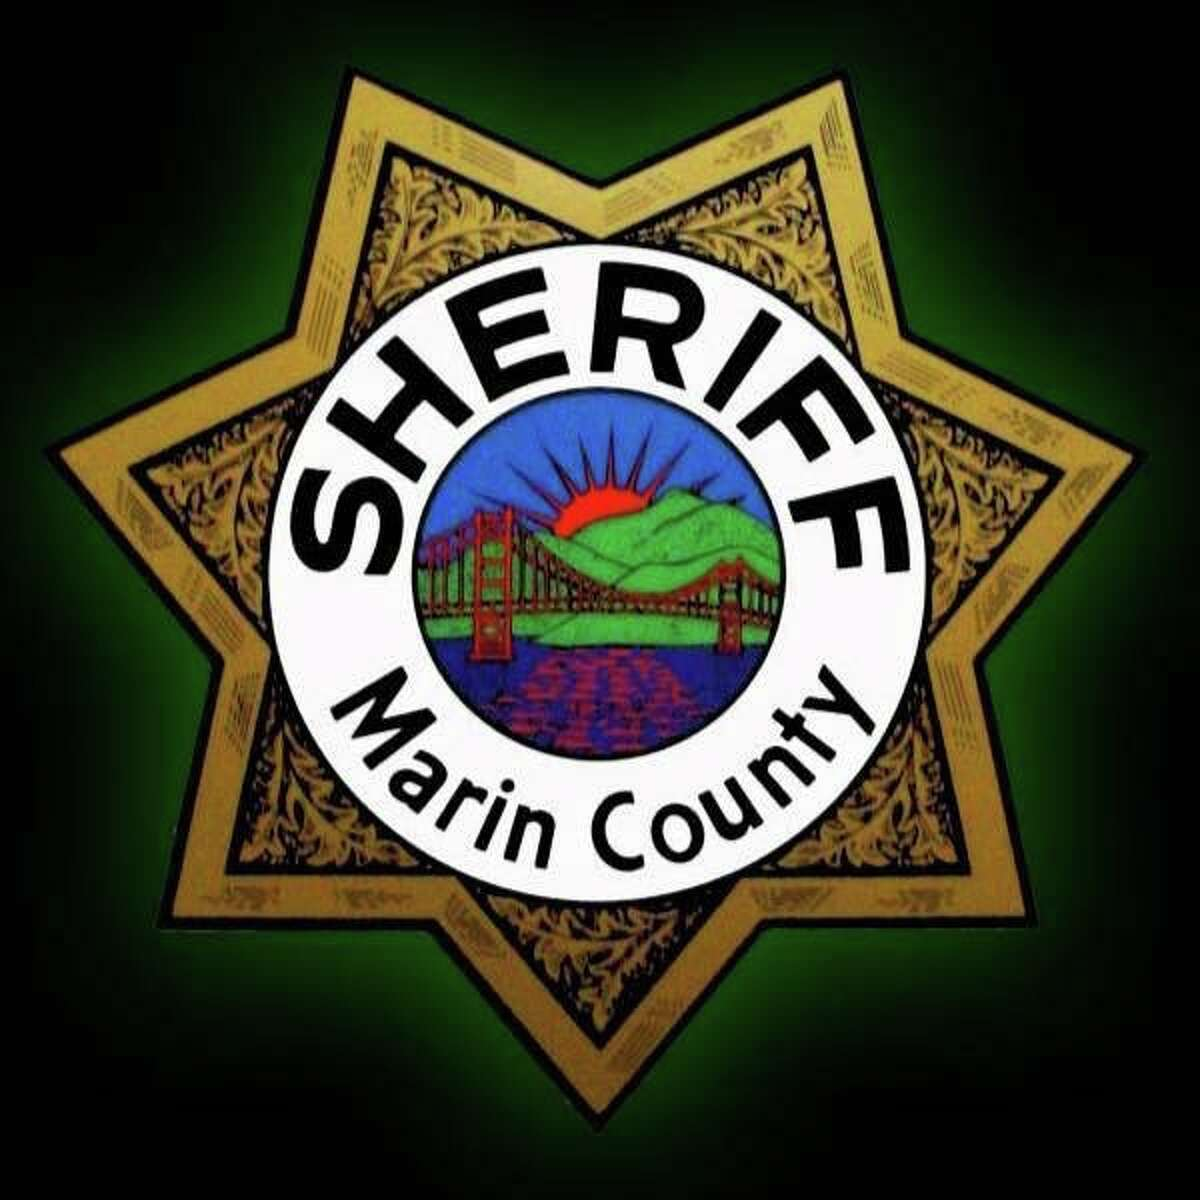 The Marin County sheriff has been sued for sharing license plate photographs with ICE and other federal and state agencies.